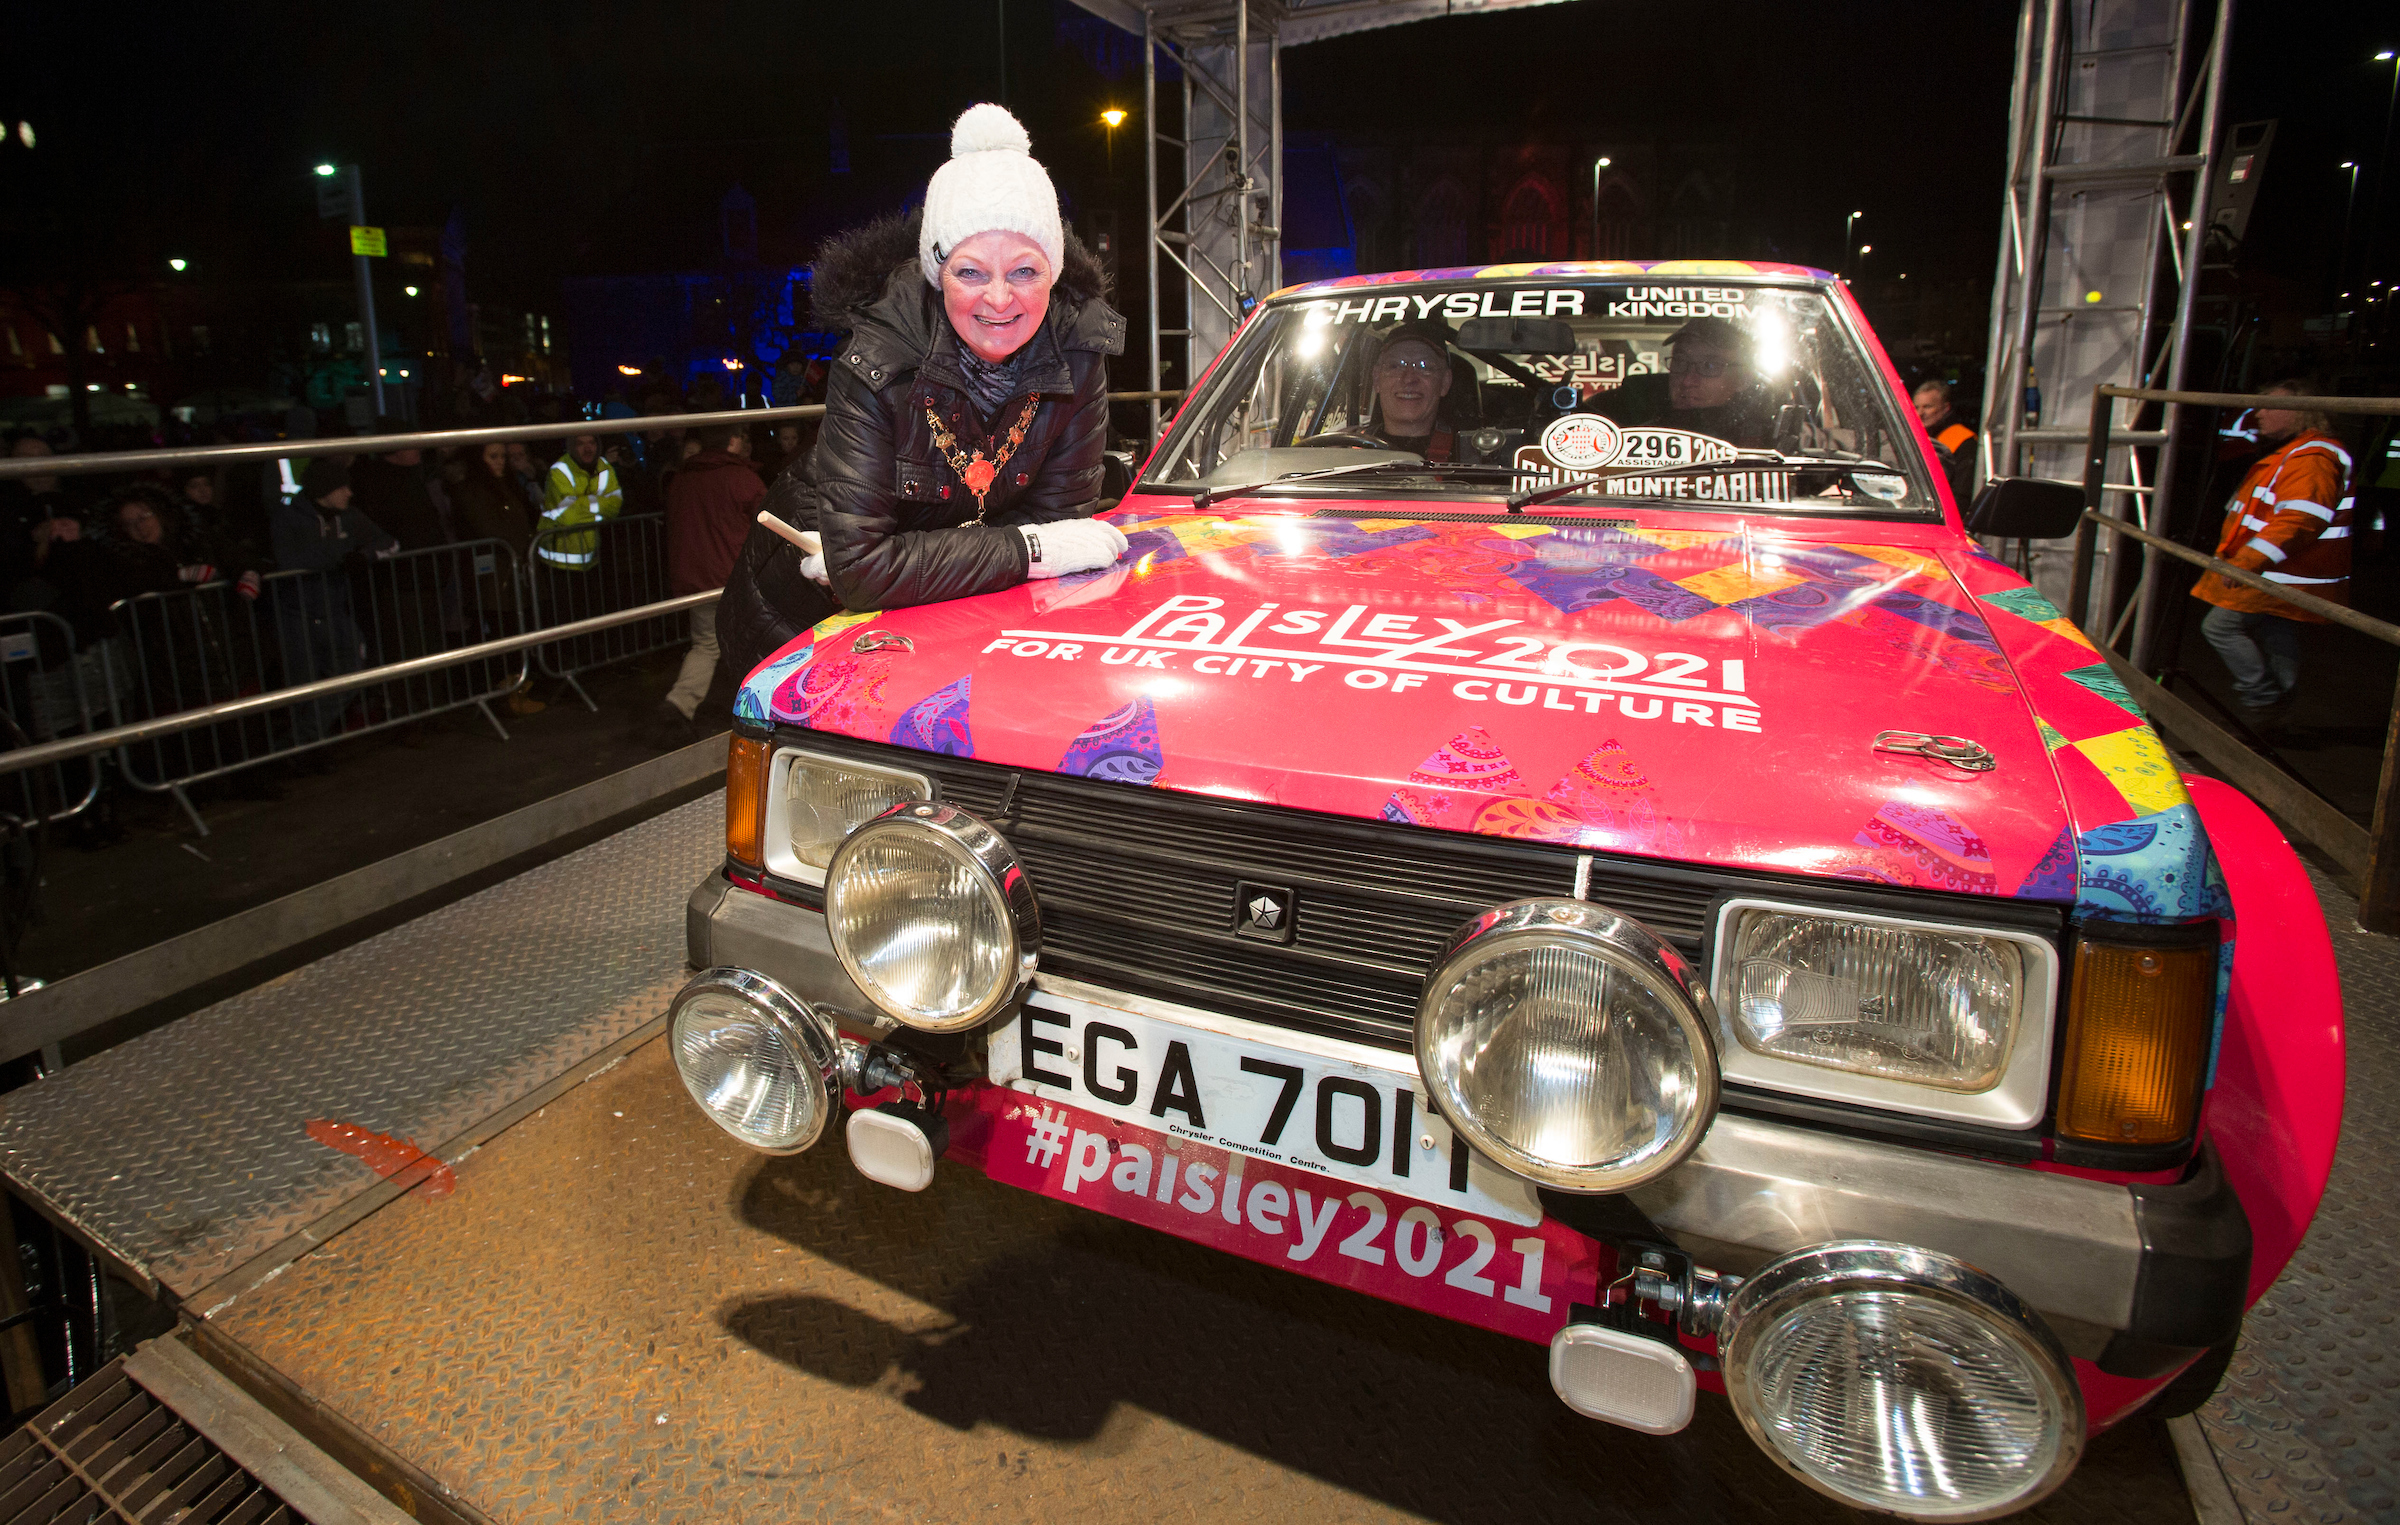 Paisley 2021 car steals the show on epic Monte Carlo trip